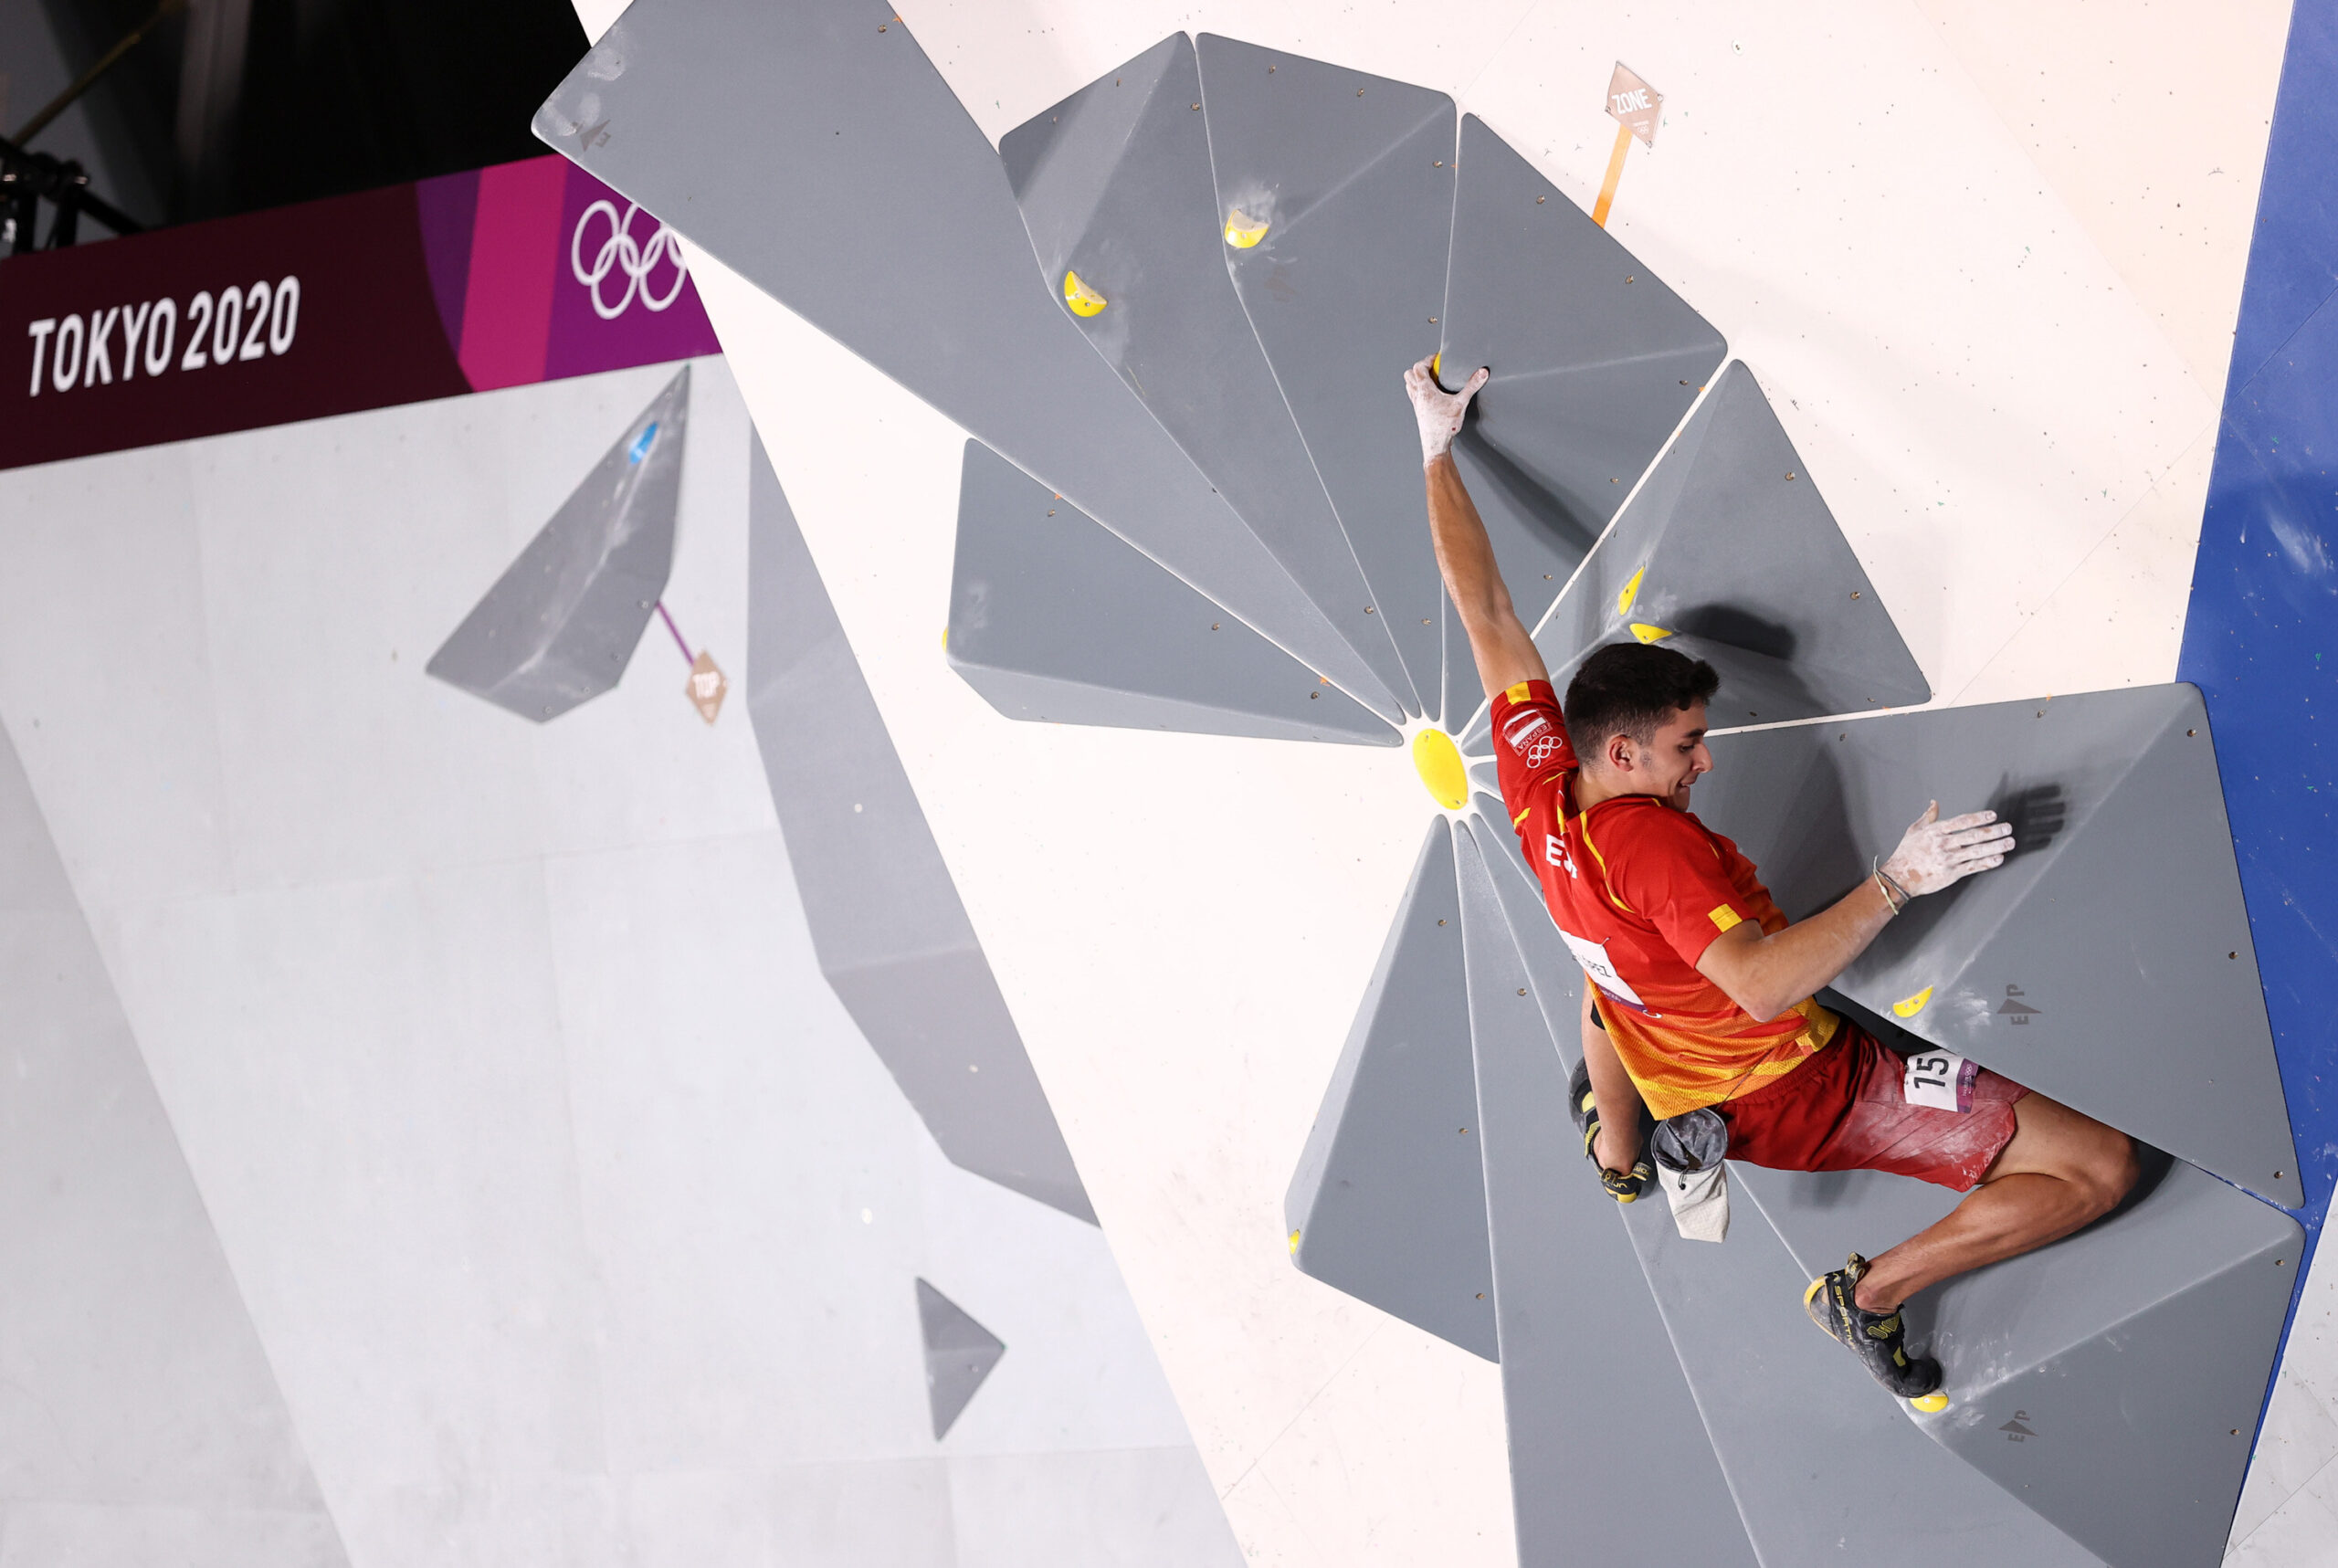 <i>Maja Hitij/Getty Images</i><br/>Ginés competes in the men's combined final at the Tokyo Olympics. He won his first Olympic climbing gold in Tokyo.